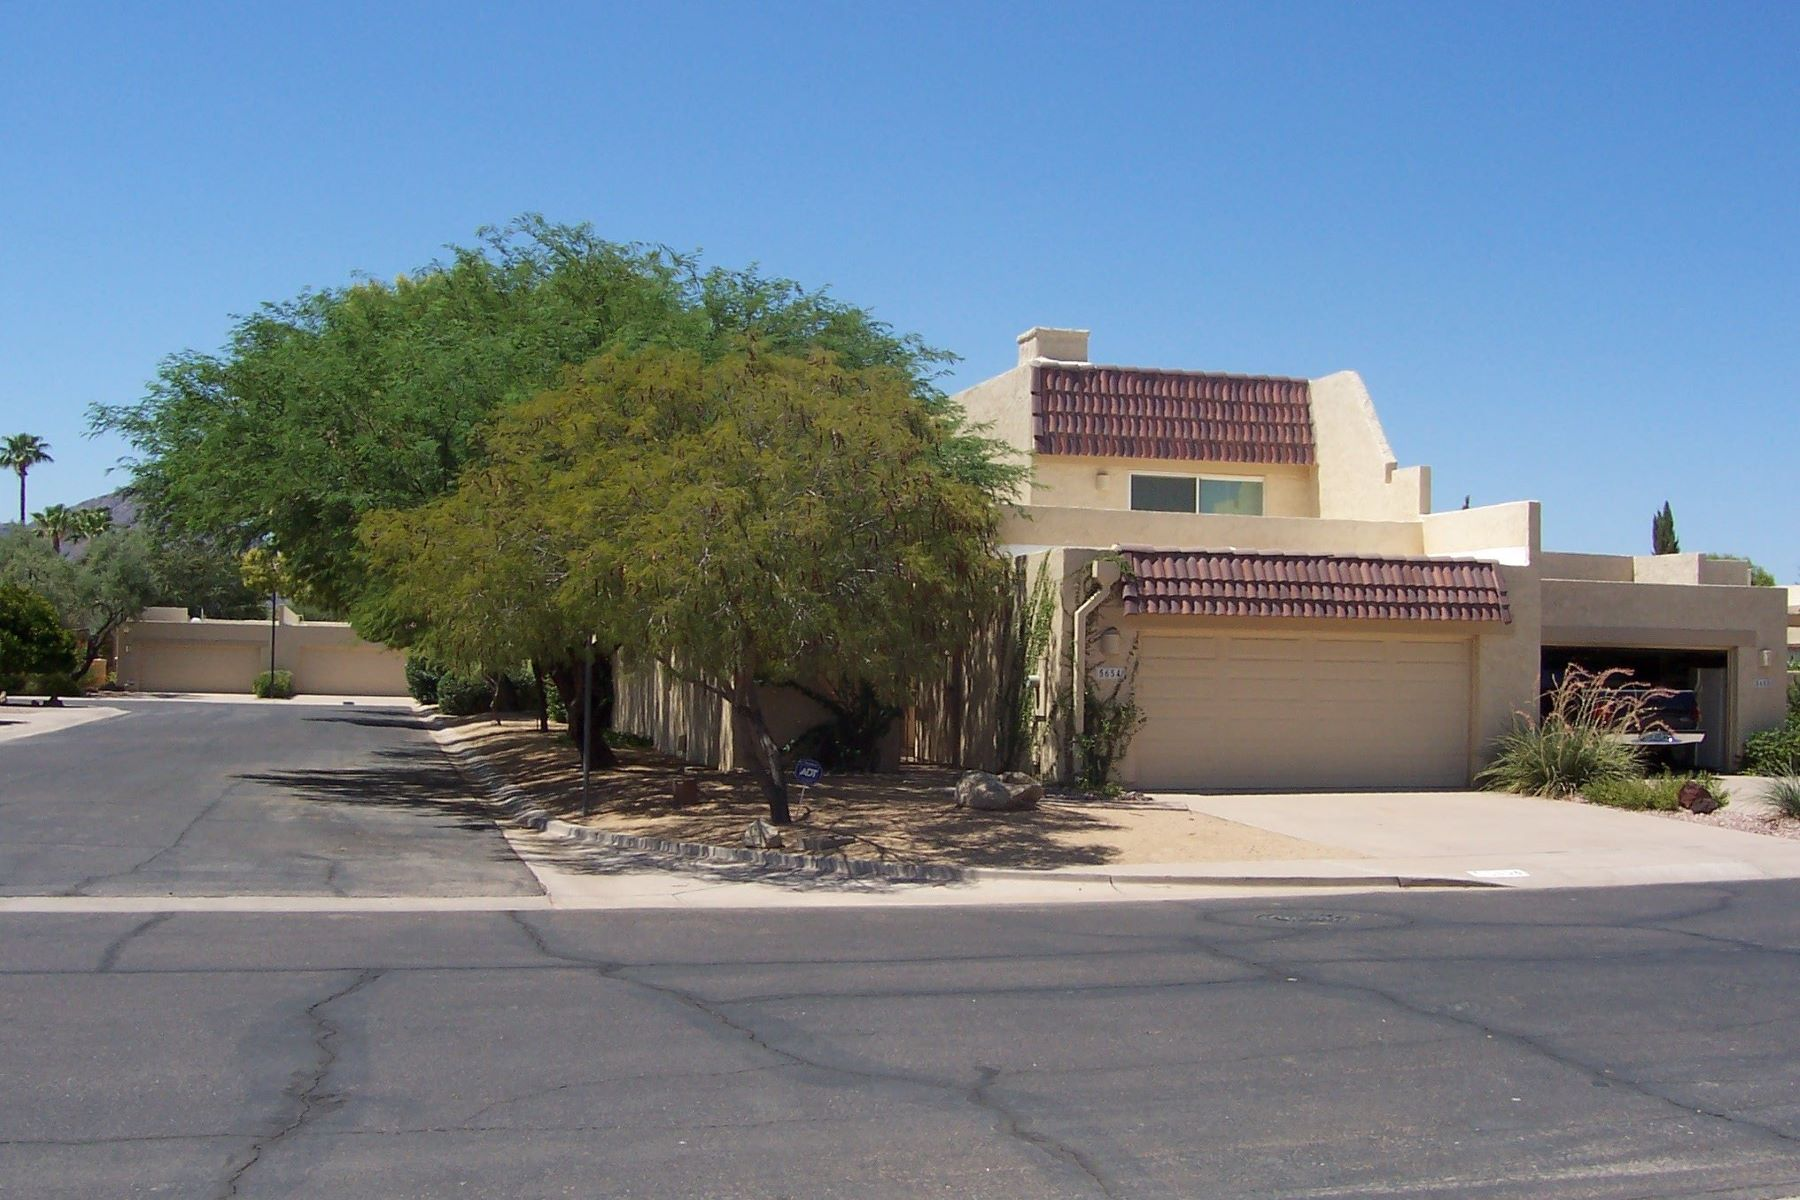 Single Family Home for Rent at Wonderful Townhome with Attached Garage 5654 N 78th Way Scottsdale, Arizona 85250 United States